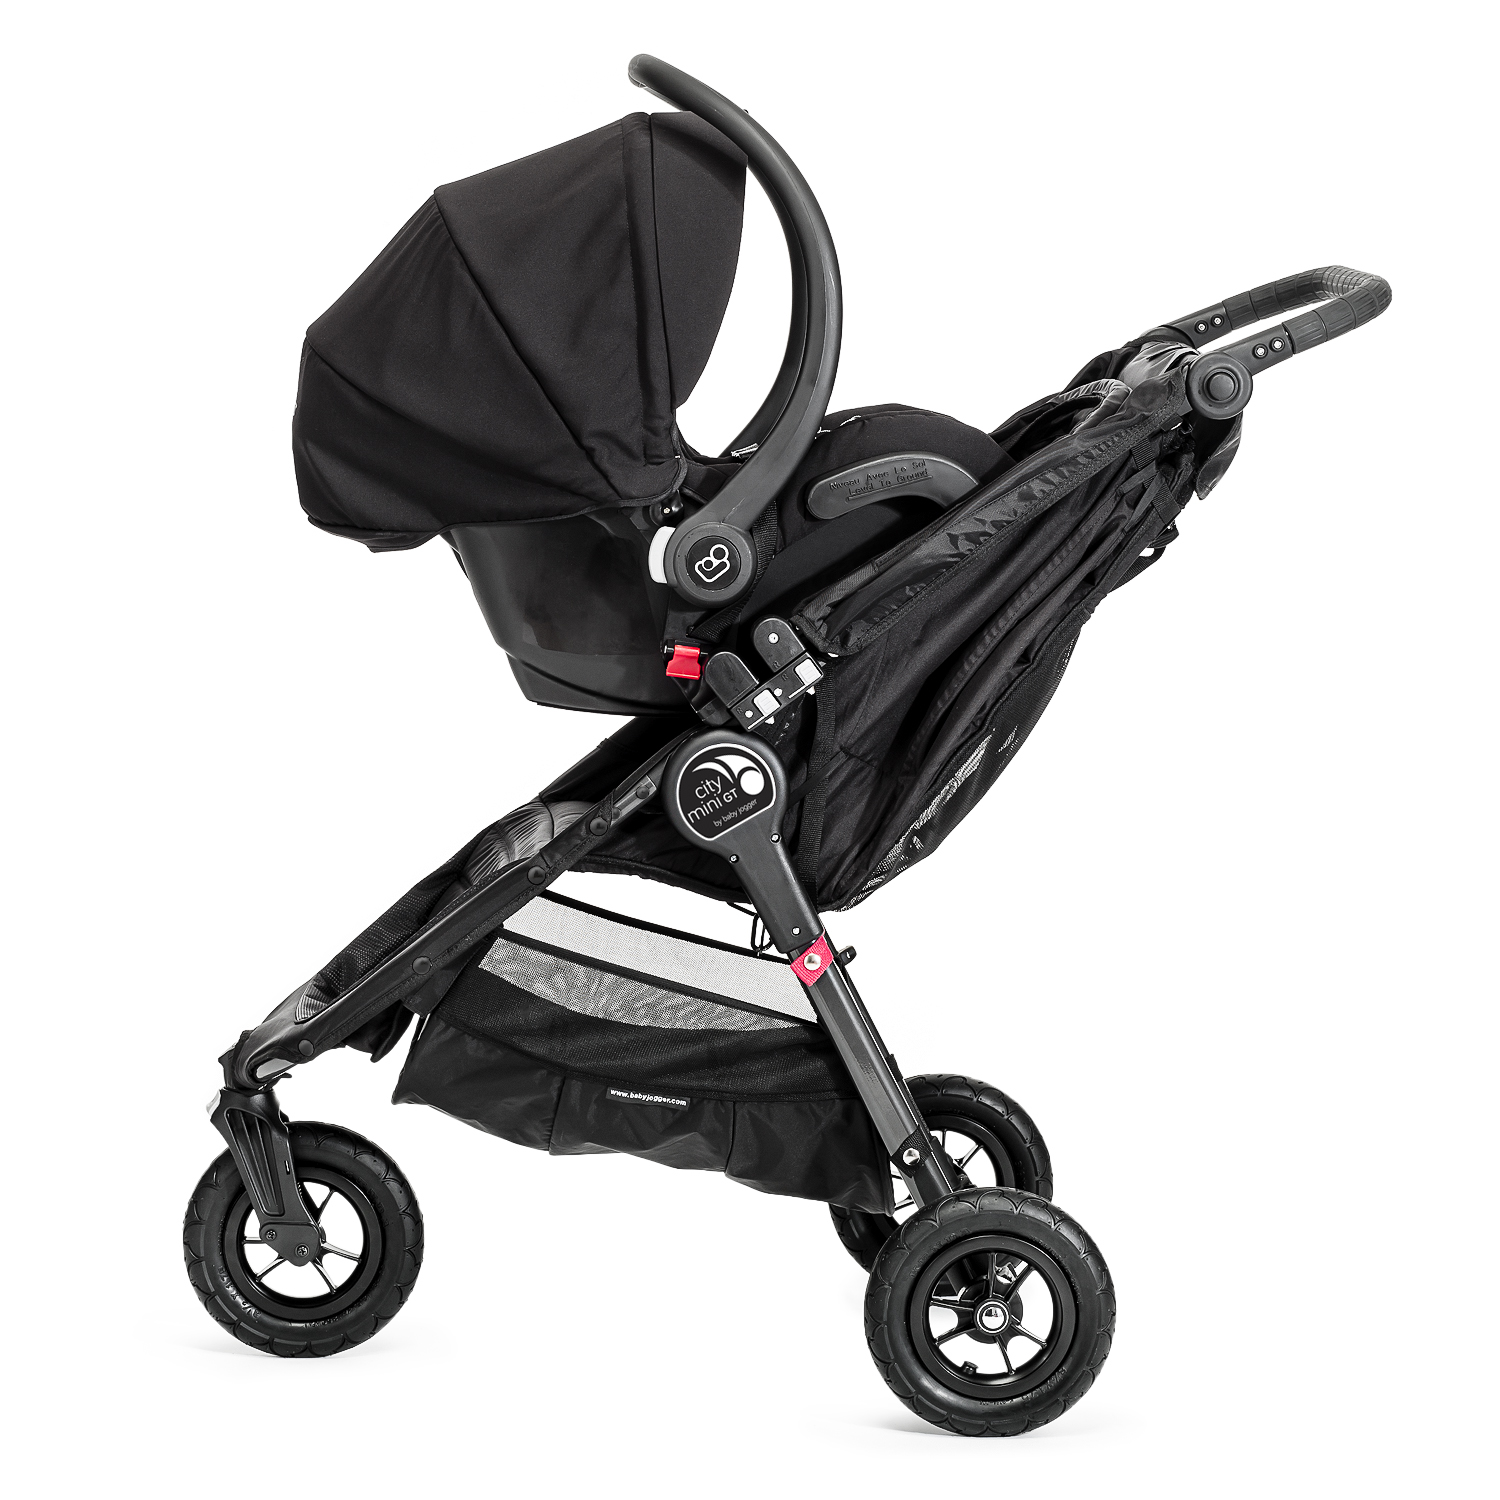 ea7e3c3b4 Baby Jogger City Mini GT Newborn Pram Bundle - Black - Baby and ...